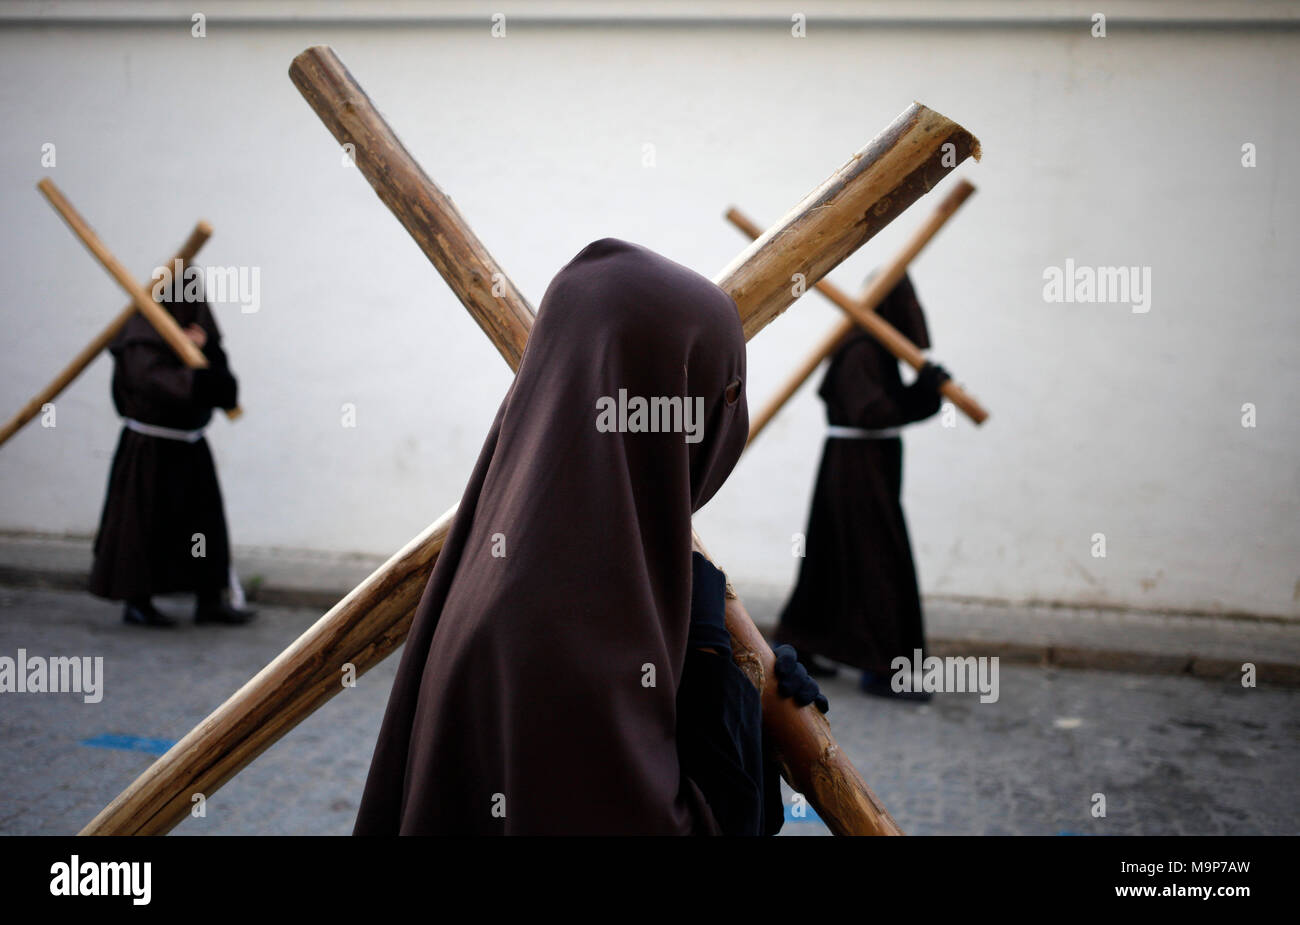 Hooded penitents carry crosses during Easter Week celebrations in Baeza, Jaen Province, Andalusia, Spain - Stock Image